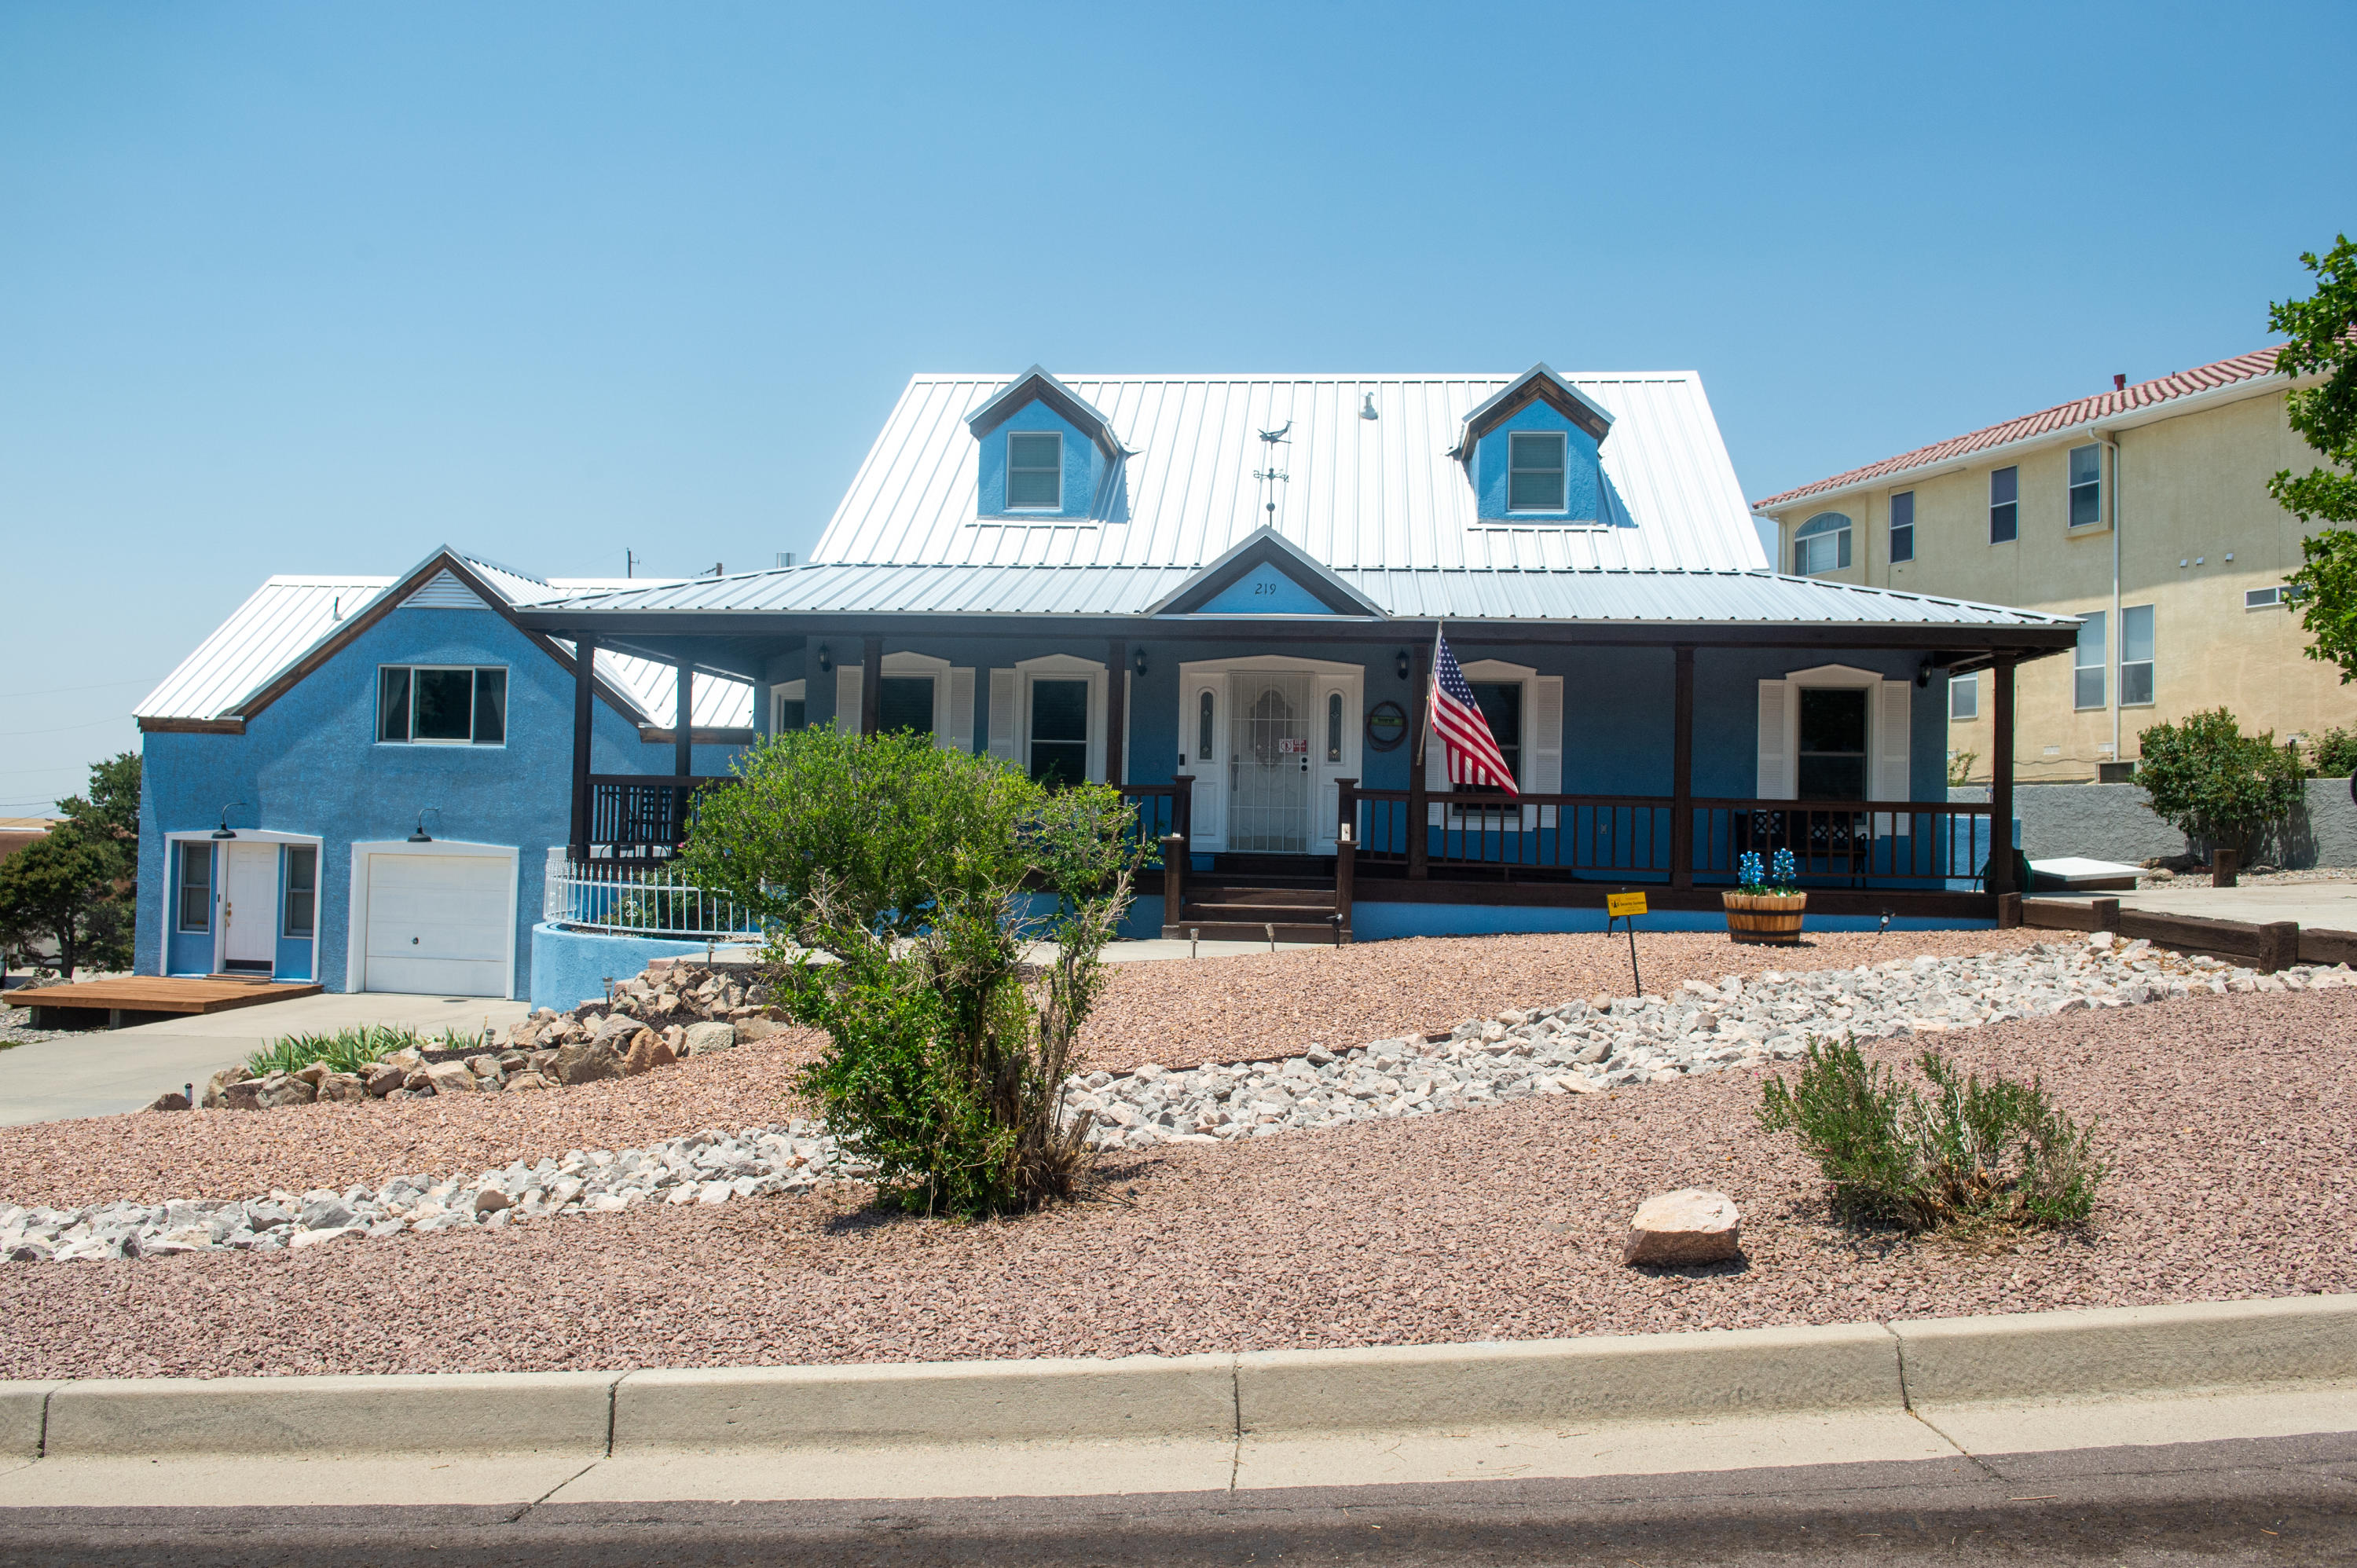 Situated at the base of 365 trailhead, this house is ''more nature than neighbors''... with all the amenities and ready access to Albuquerque! Enjoy beautiful views from covered porches in the front and the back. This home has been meticulously cared for and it shows! The kitchen is beautifully updated. You'll be charmed by the brick floors. The secondary bedrooms are ideally situated away from the main bedroom. Fourth room and a full bath attached to the opposite side of the garage makes for a great studio or a workspace. Abundant storage like you've never seen!  Don't miss the storage rooms behind the upstair closets-- complete with flooring and electricity! Almost an entire car bay worth of extra storage in the garage. Timeless beauty! This house is love at first sight!